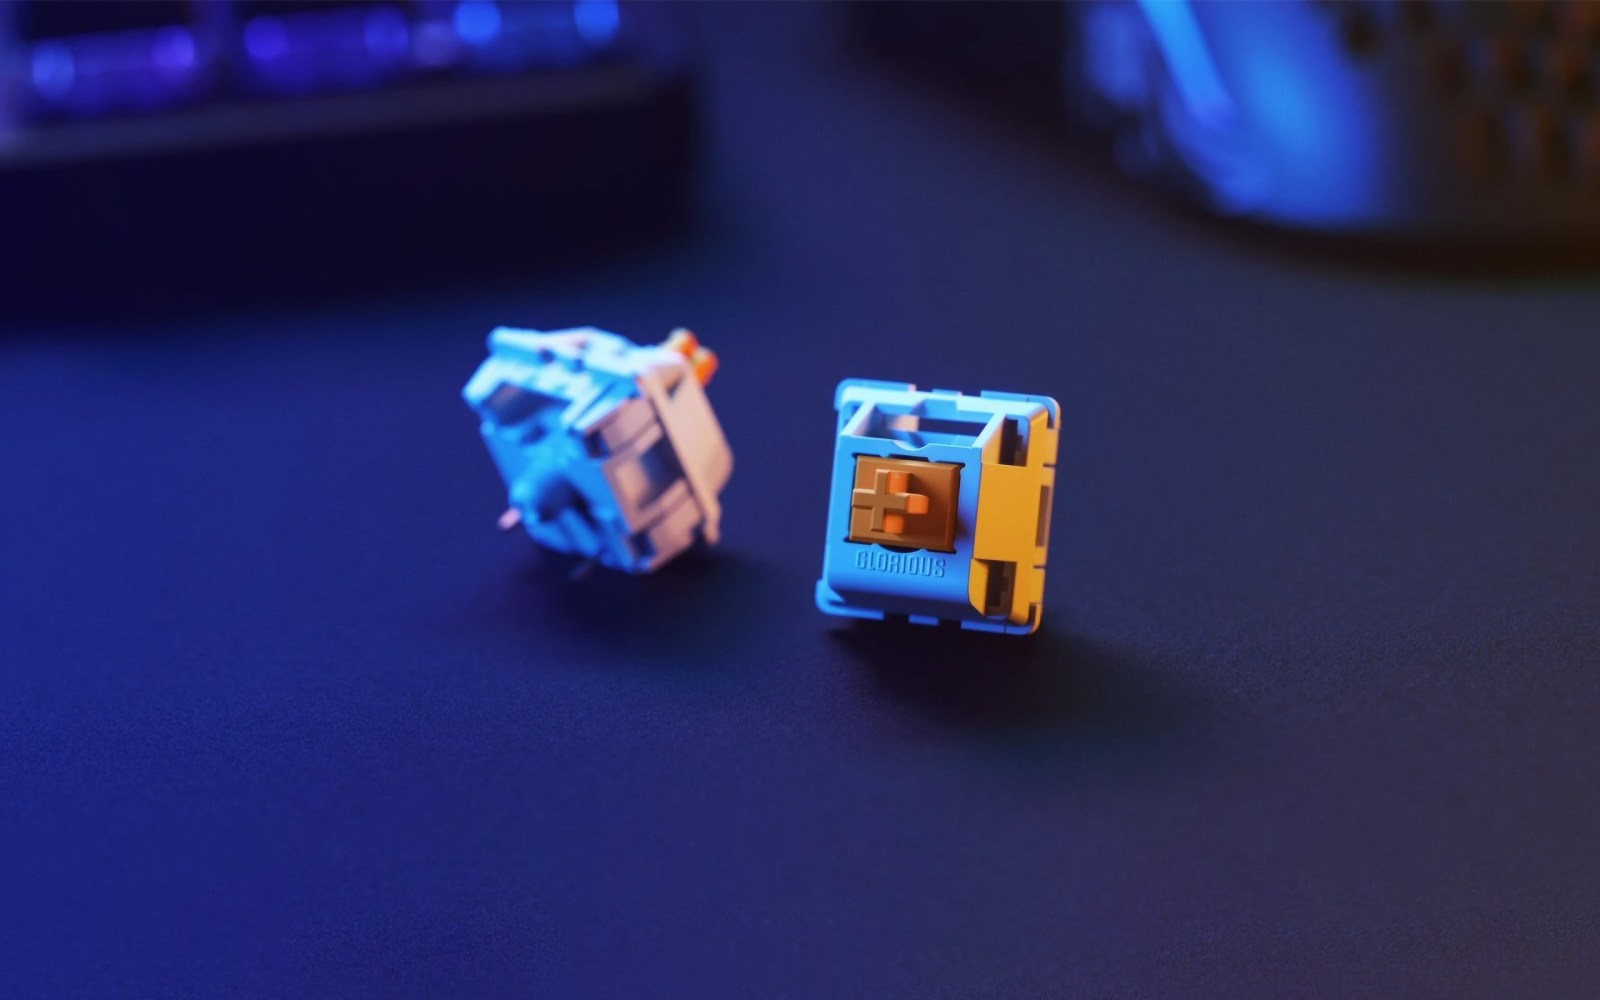 Glorious Panda Mechanical Switches for a transcendent typing experience